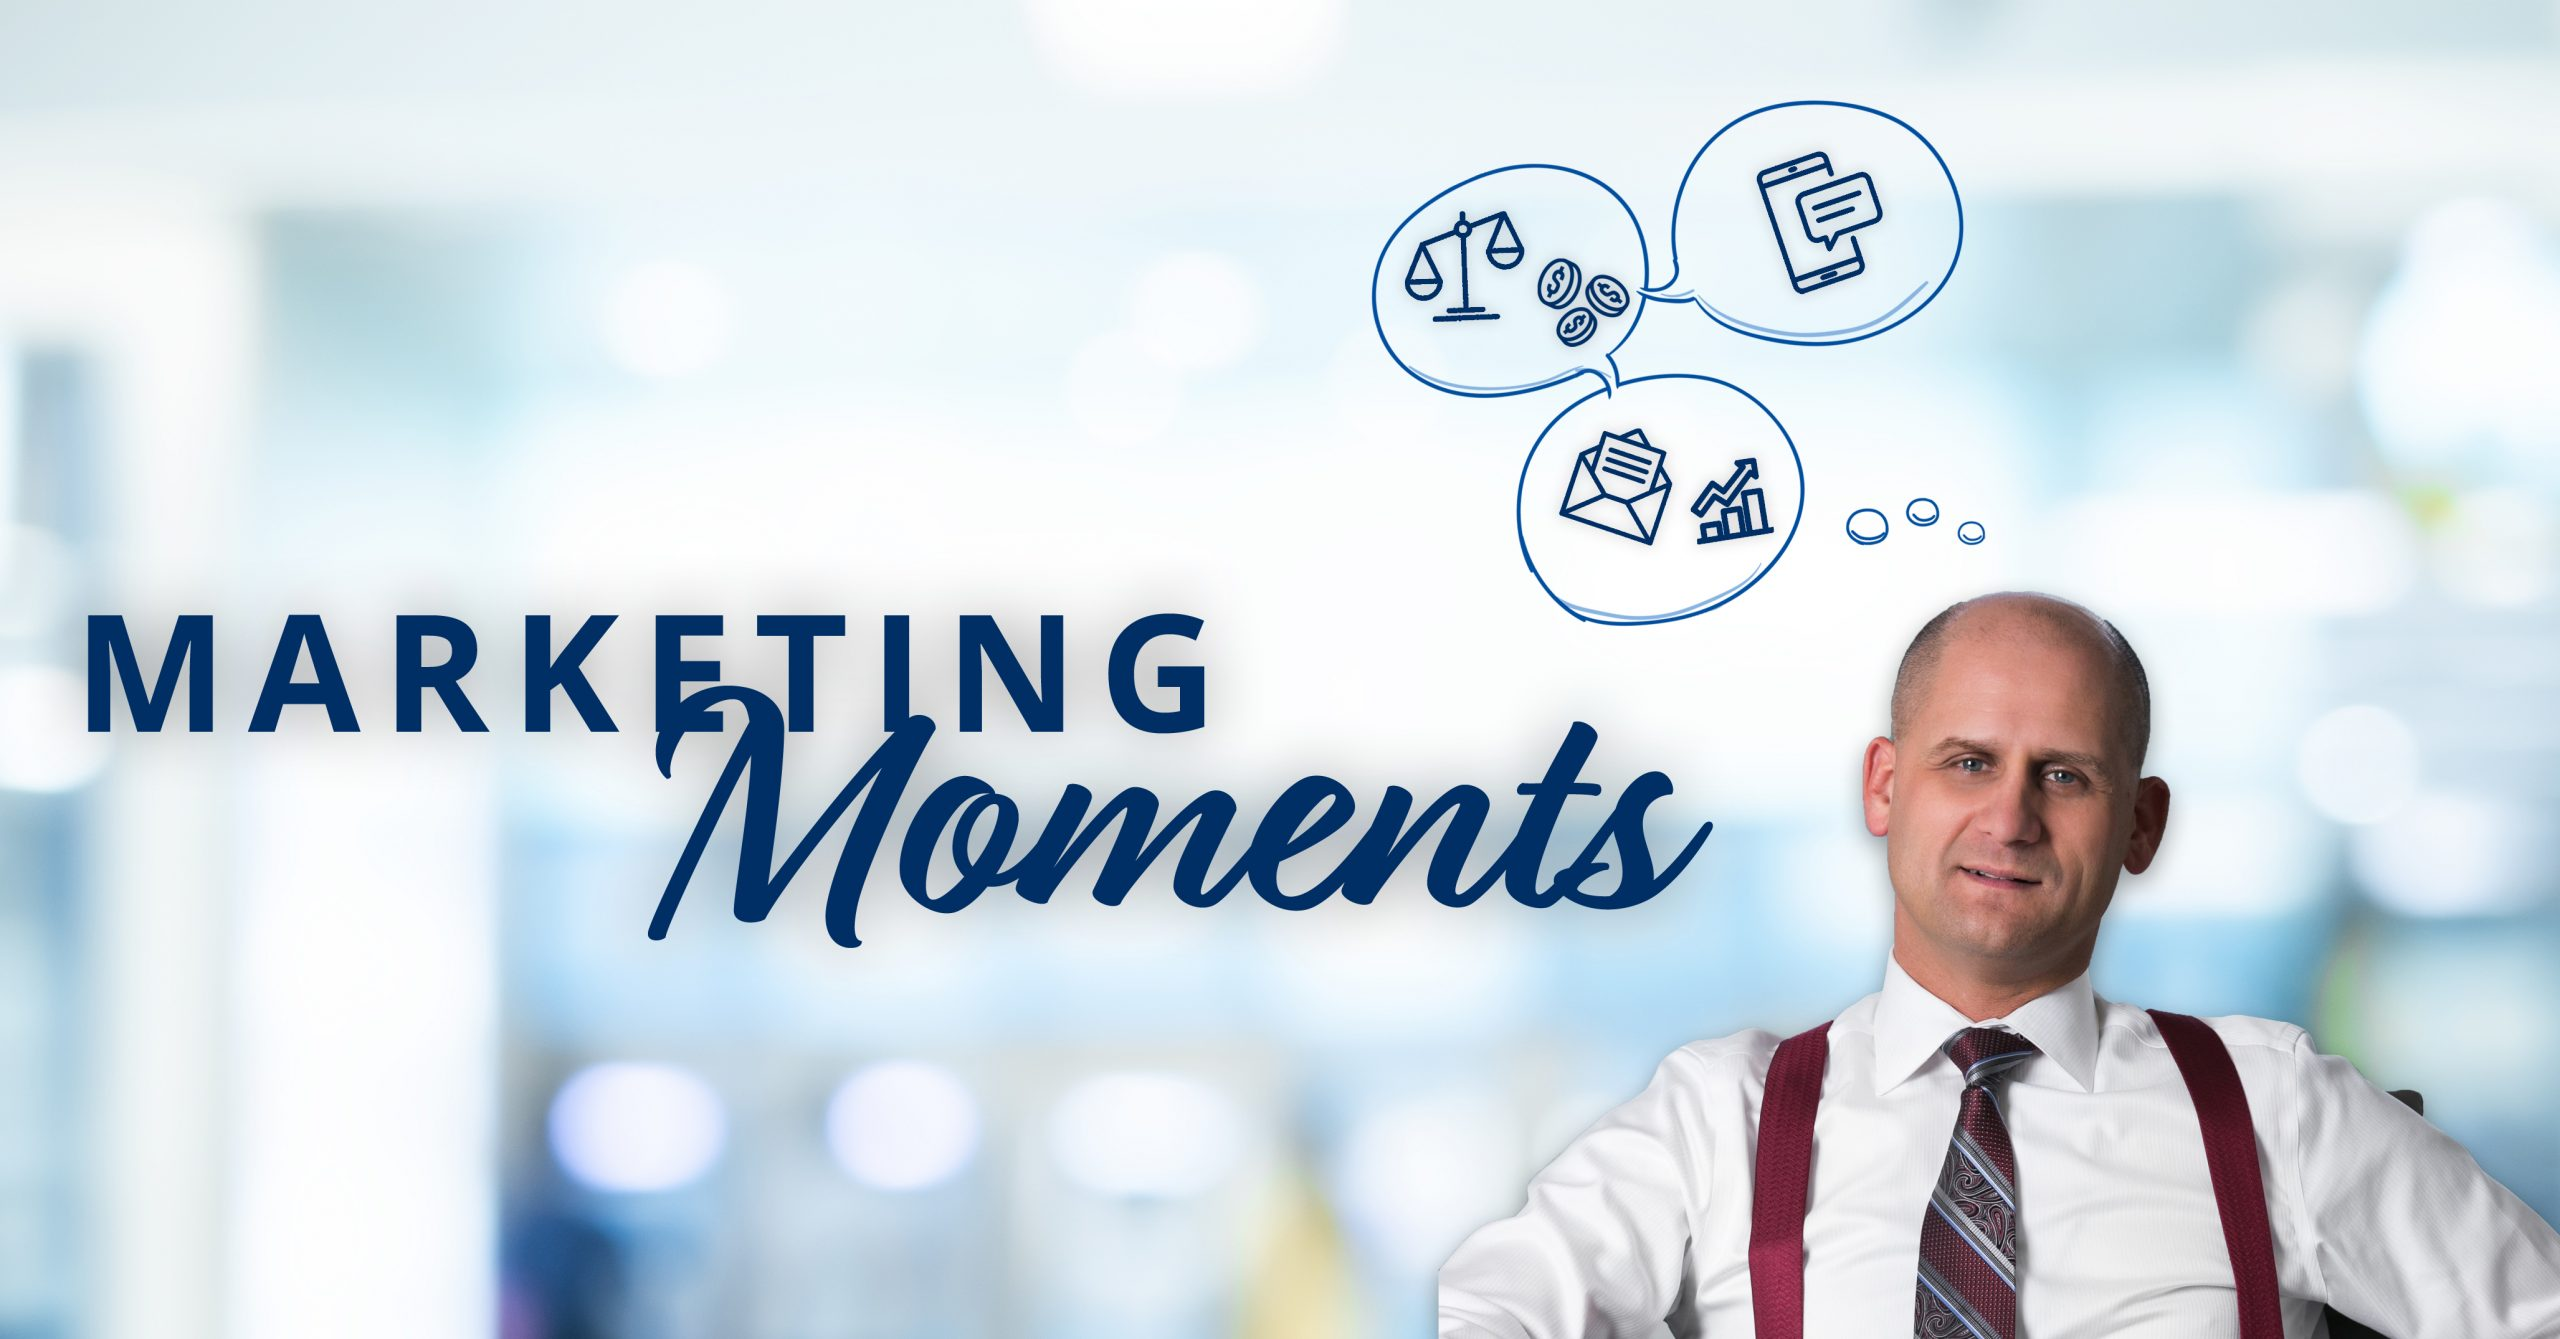 Marketing Moments podcast cover featuring attorney Thomas Repczynski